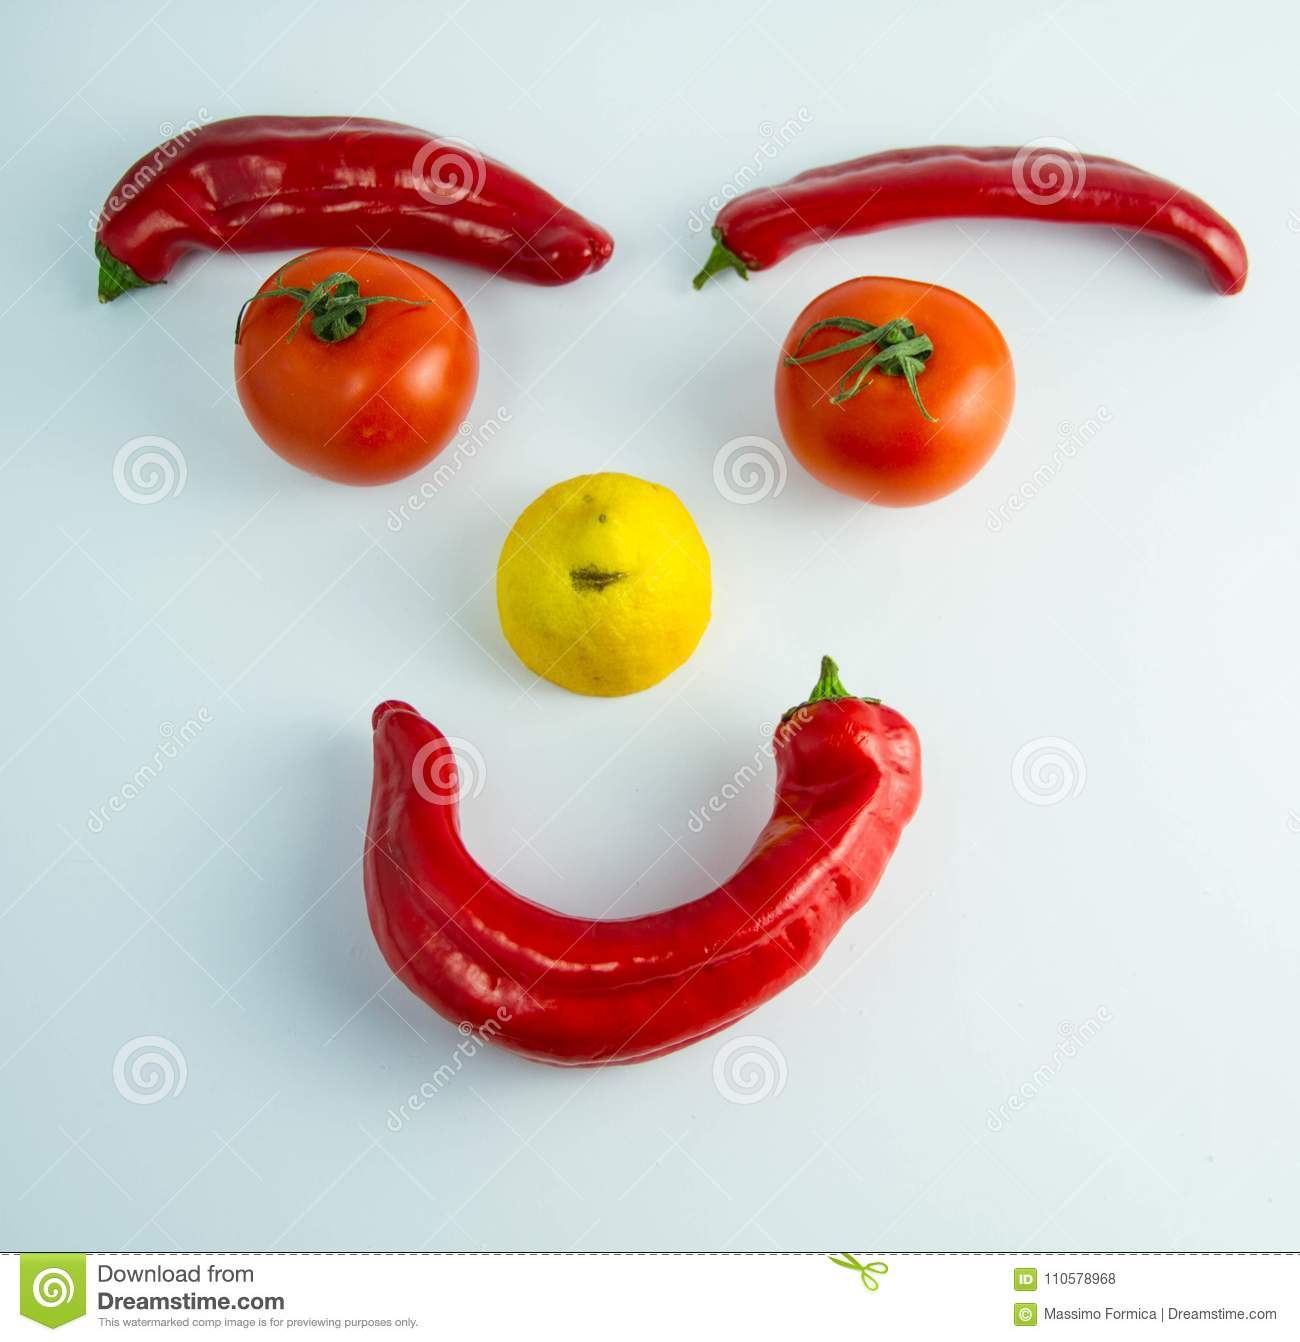 A funny smiling emoticon made of vegetables